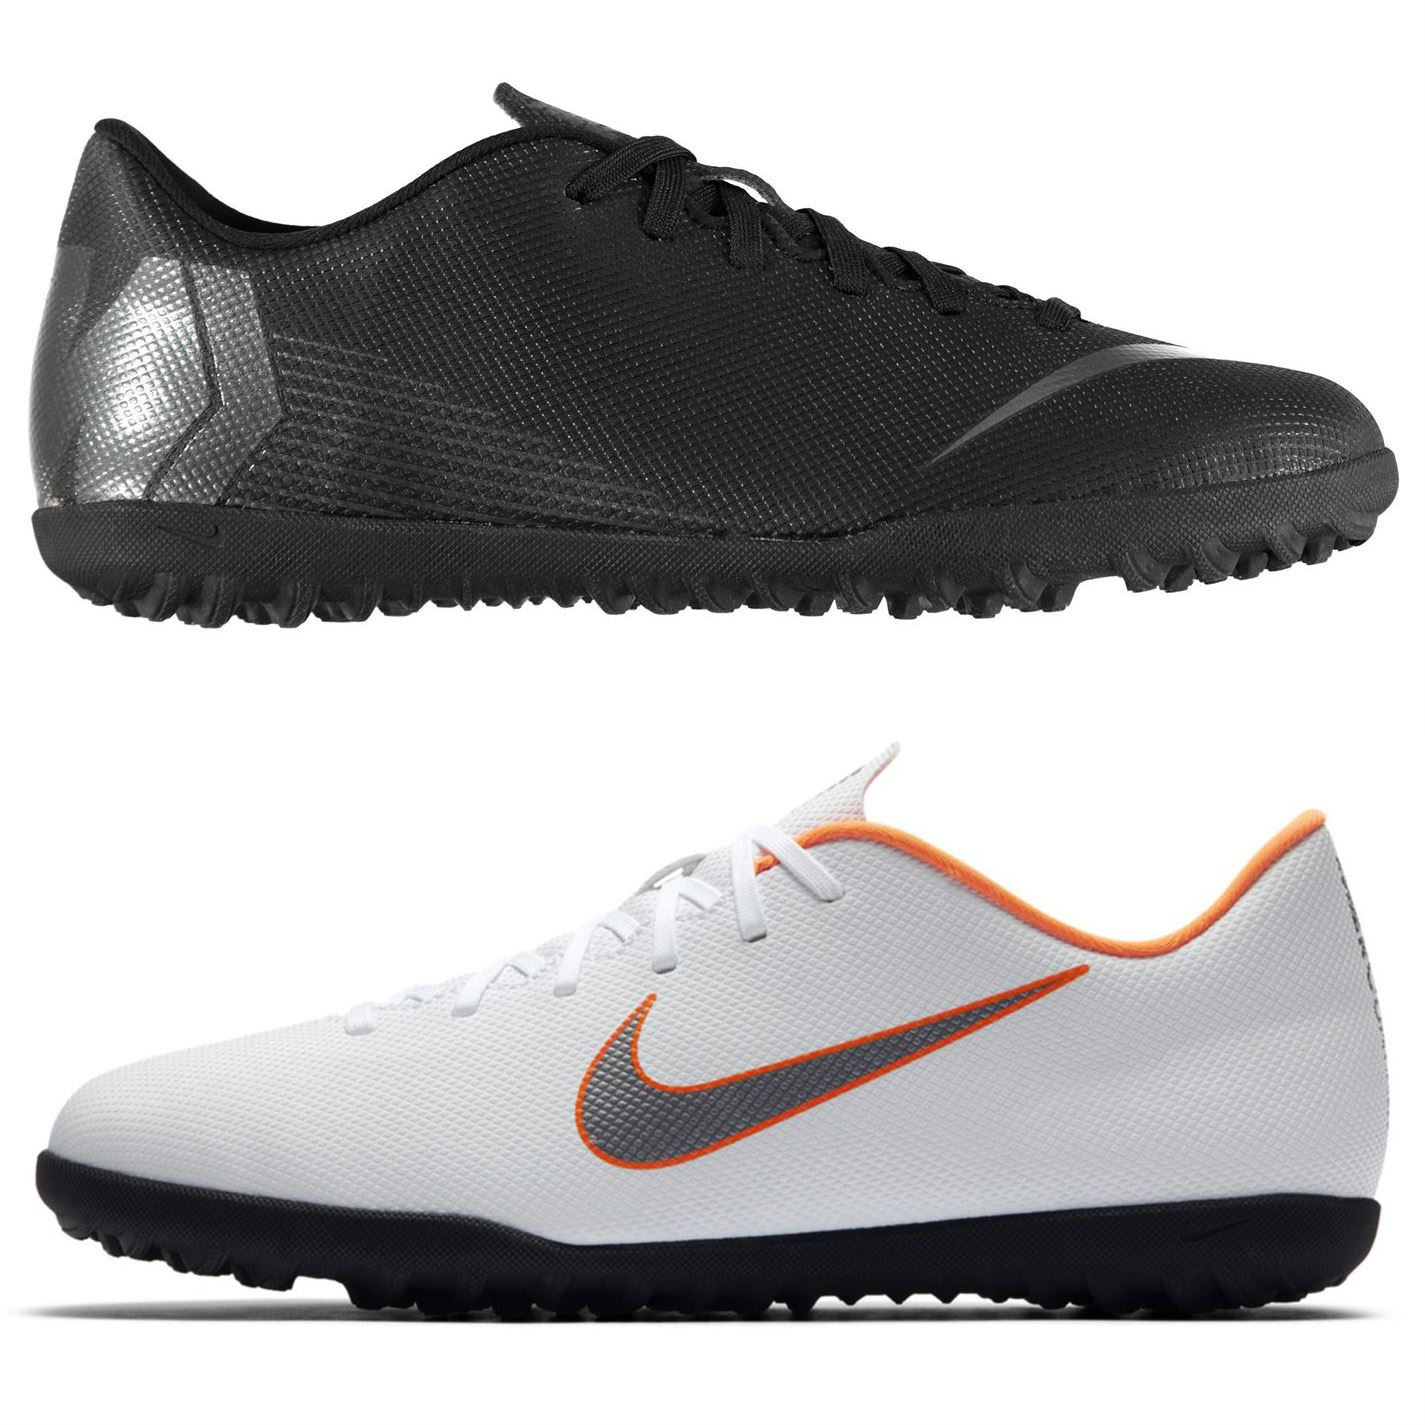 89e34f8a0fa ... Nike Mercurial Vapor Club Astro Turf Football Trainers Mens Soccer Shoe  Sneakers ...